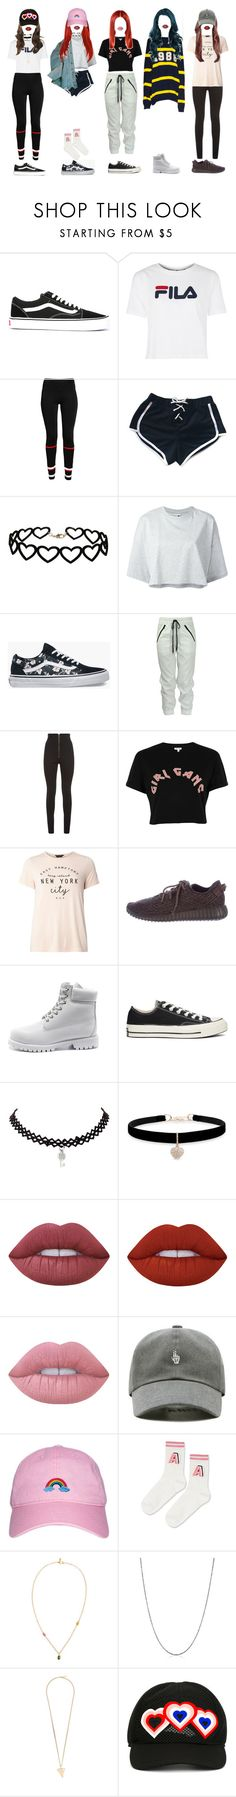 """[ dance practice ] G-3 _ MY LOVE"" by xxeucliffexx ❤ liked on Polyvore featuring Vans, Fila, Givenchy, My Mum Made It, Miss Selfridge, Puma, Balmain, River Island, Dorothy Perkins and adidas Originals"